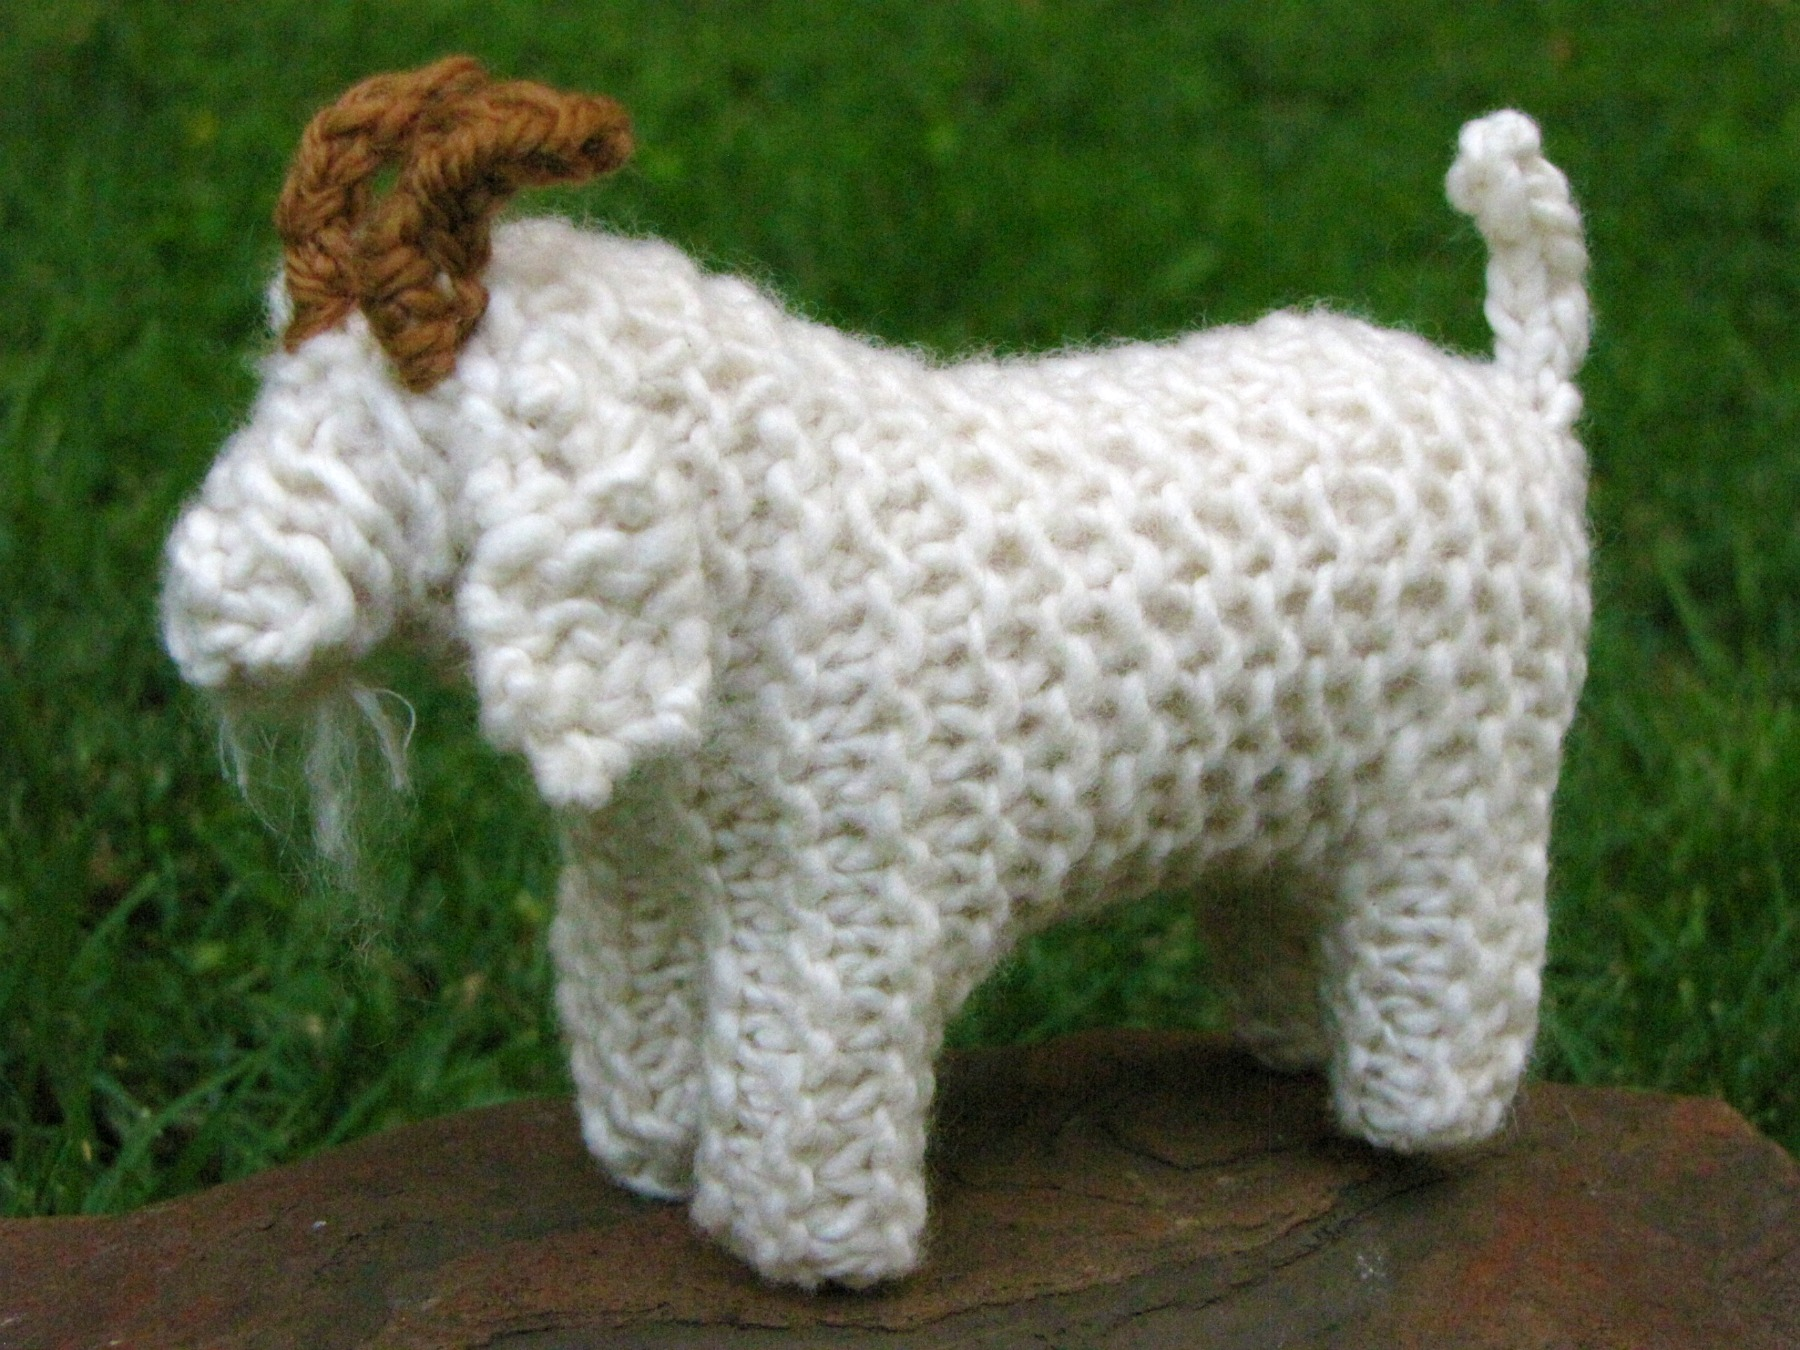 Knitted Goat pattern